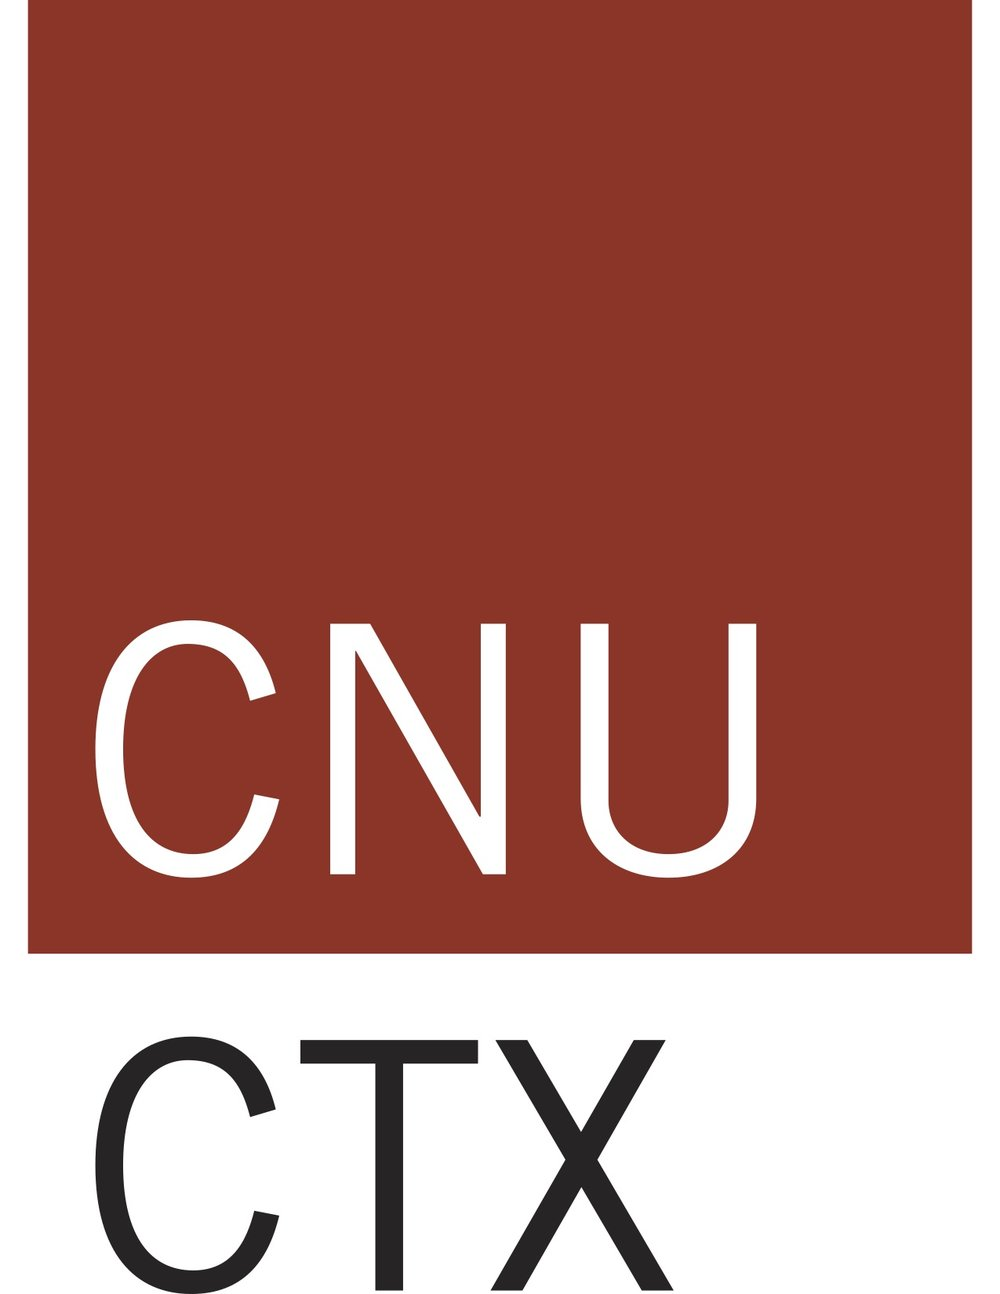 cnu-ctx-logo-red copy 2.jpg